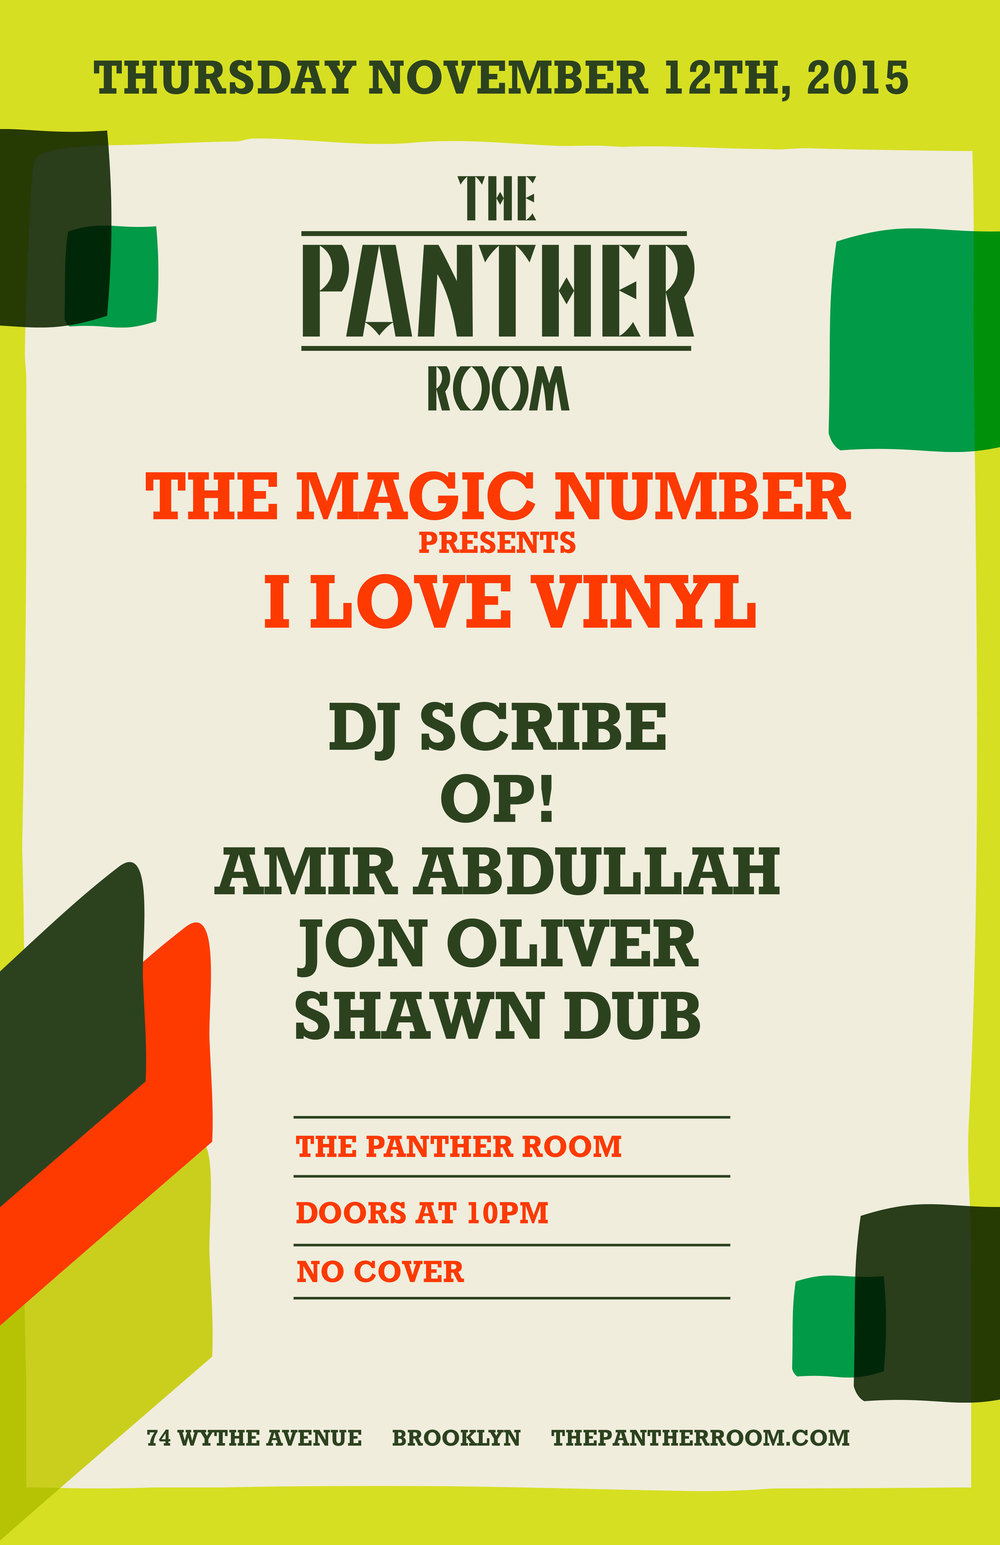 I Love Vinyl   *THURSDAY* Nov 12th    Residents:   DJ Scribe   Amir Abdullah   Jon Oliver   OP!   Shawn Dub    I Love Vinyl is back at our new monthly home at The Panther Room at Ouput onThursday, Nov. 12. The parties there get better every time and the last one was pure fire. Not sure what would be hotter than fire, but the upcoming party will definitely be that. The bomb? Boom.  This time we are joined by great friends and djs Danilo Braca aka danyb of  TSoNYC The Sound of New York City  and Jennifer Duchess Nash aka The Duchess. They will rotate in with us at the beginning and end of the night. Our cup truly doth run over, innit?  The Magic Number, Panther's fledgeling Thursday night series, tasked with breaking down the barriers of Output's house & techno orthodoxy, presents I Love Vinyl as their first and only monthly residency. Kick-ass mixer, isolator and eq provided by  Alpha Recording System .   at The Panther Room at Output 74 Wythe Ave (use separate entrance on North 12th) Williamsburg  No Cover 21+ w ID